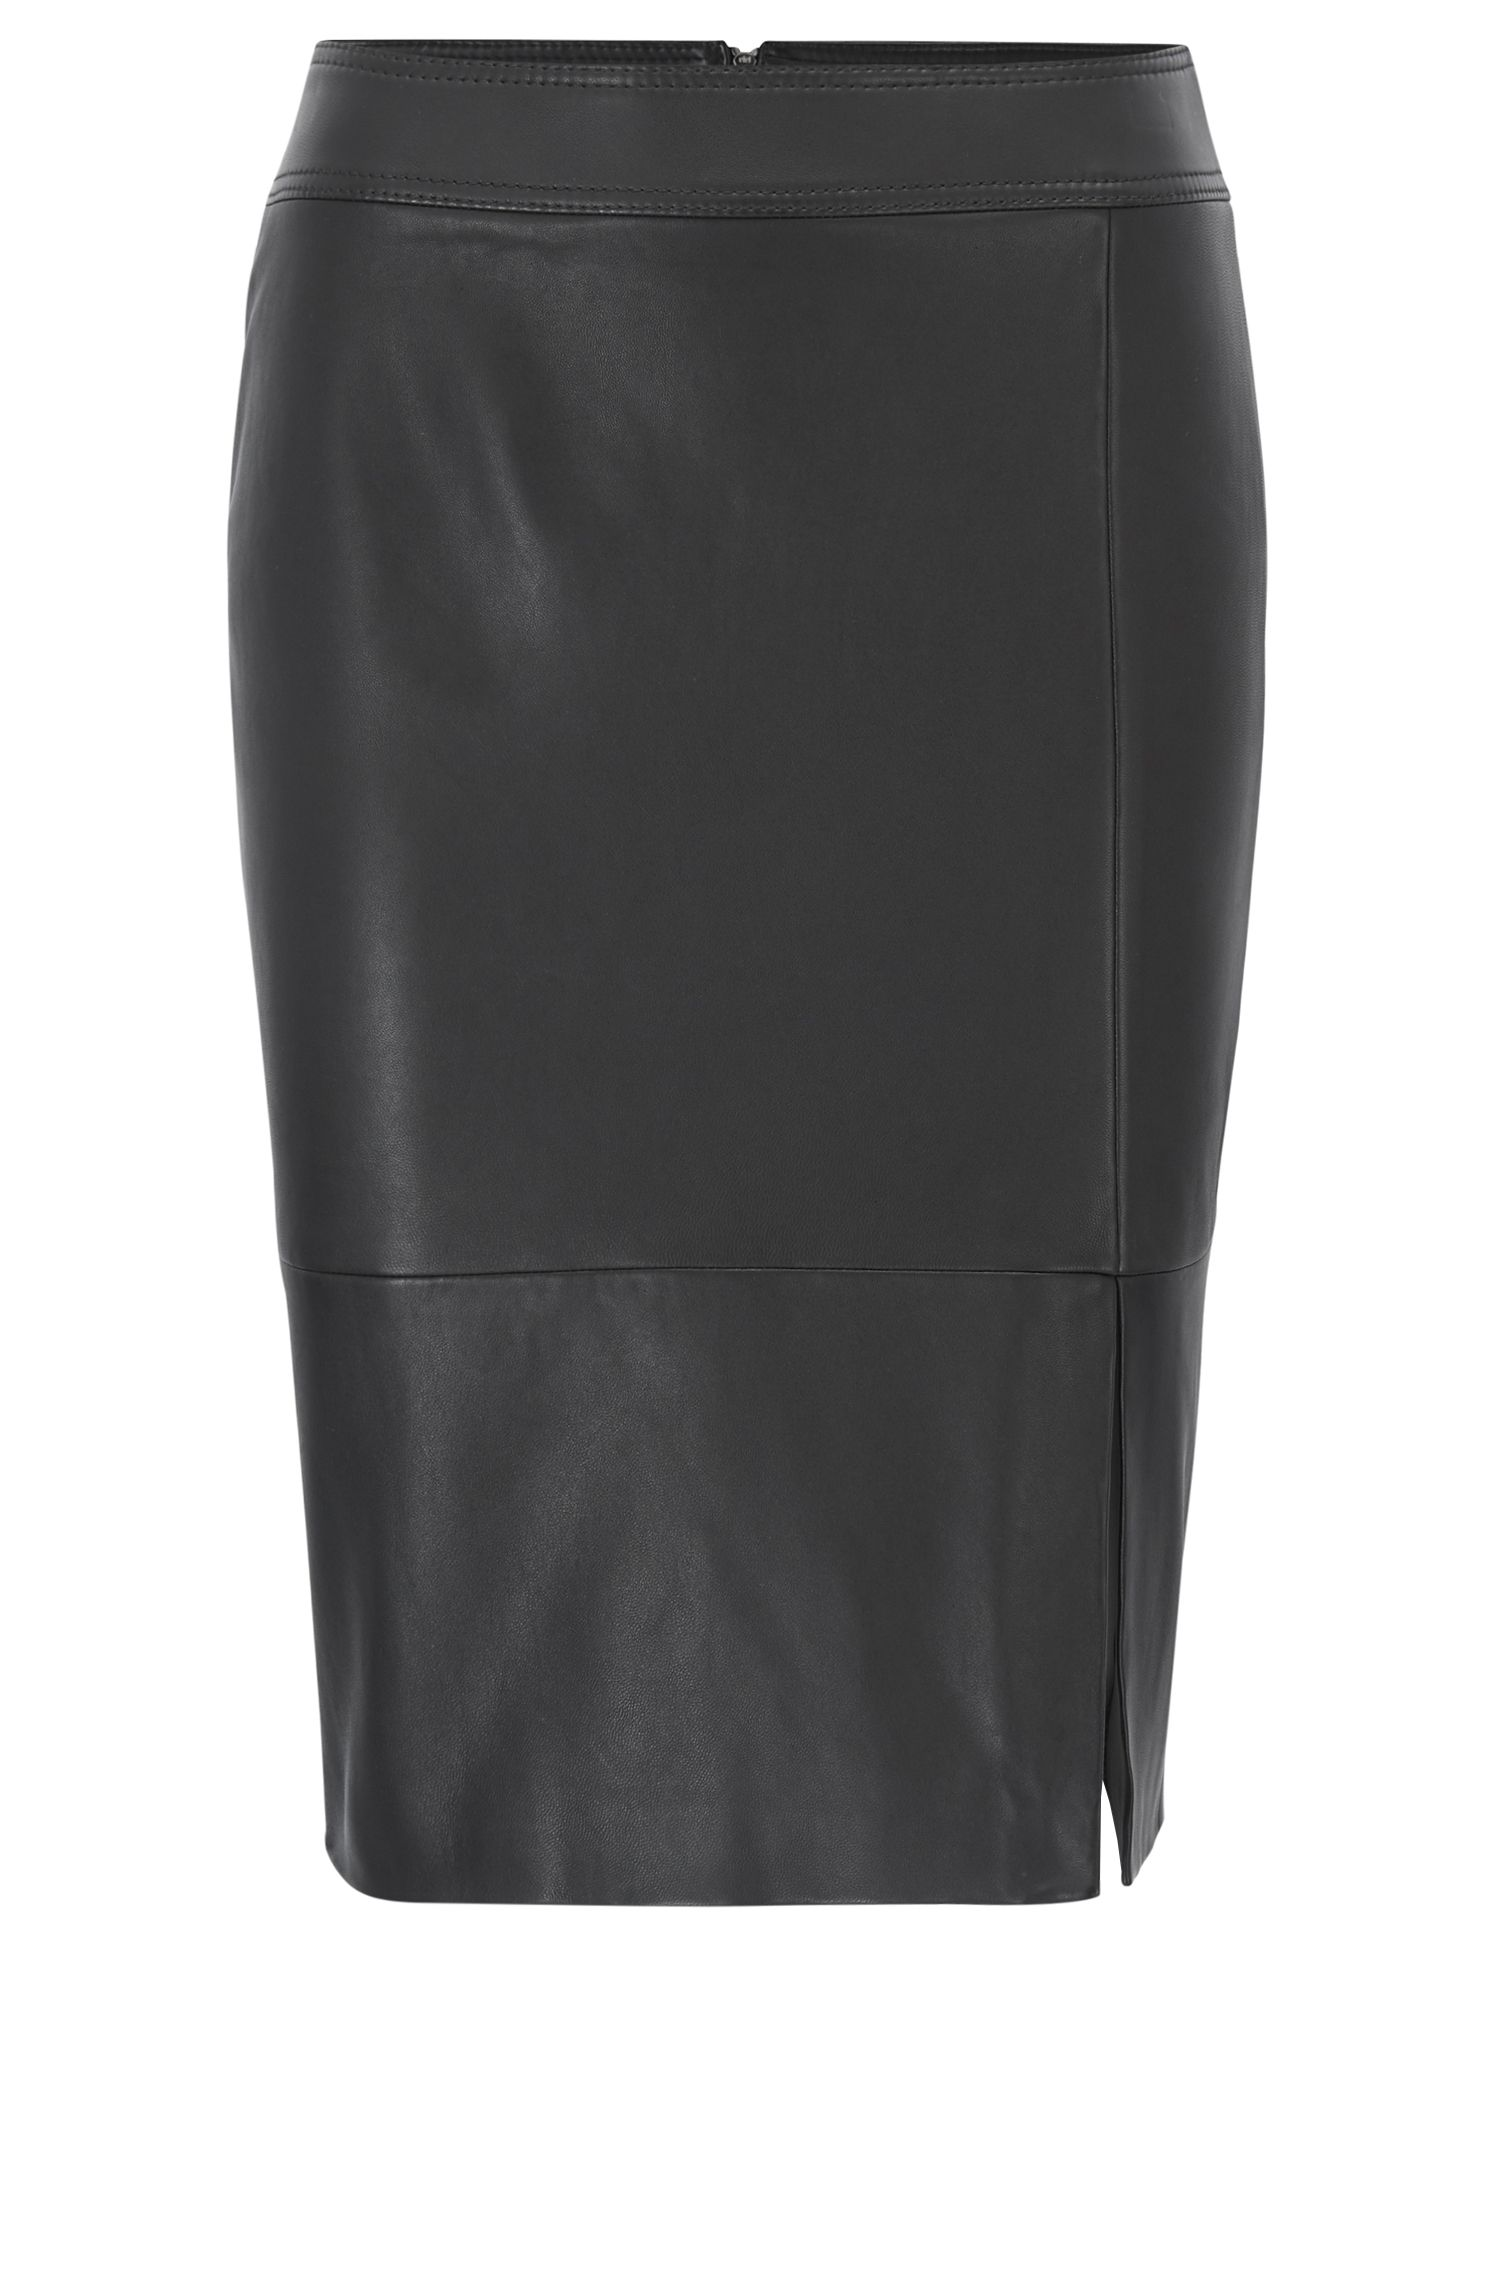 Pencil skirt in nappa lambskin